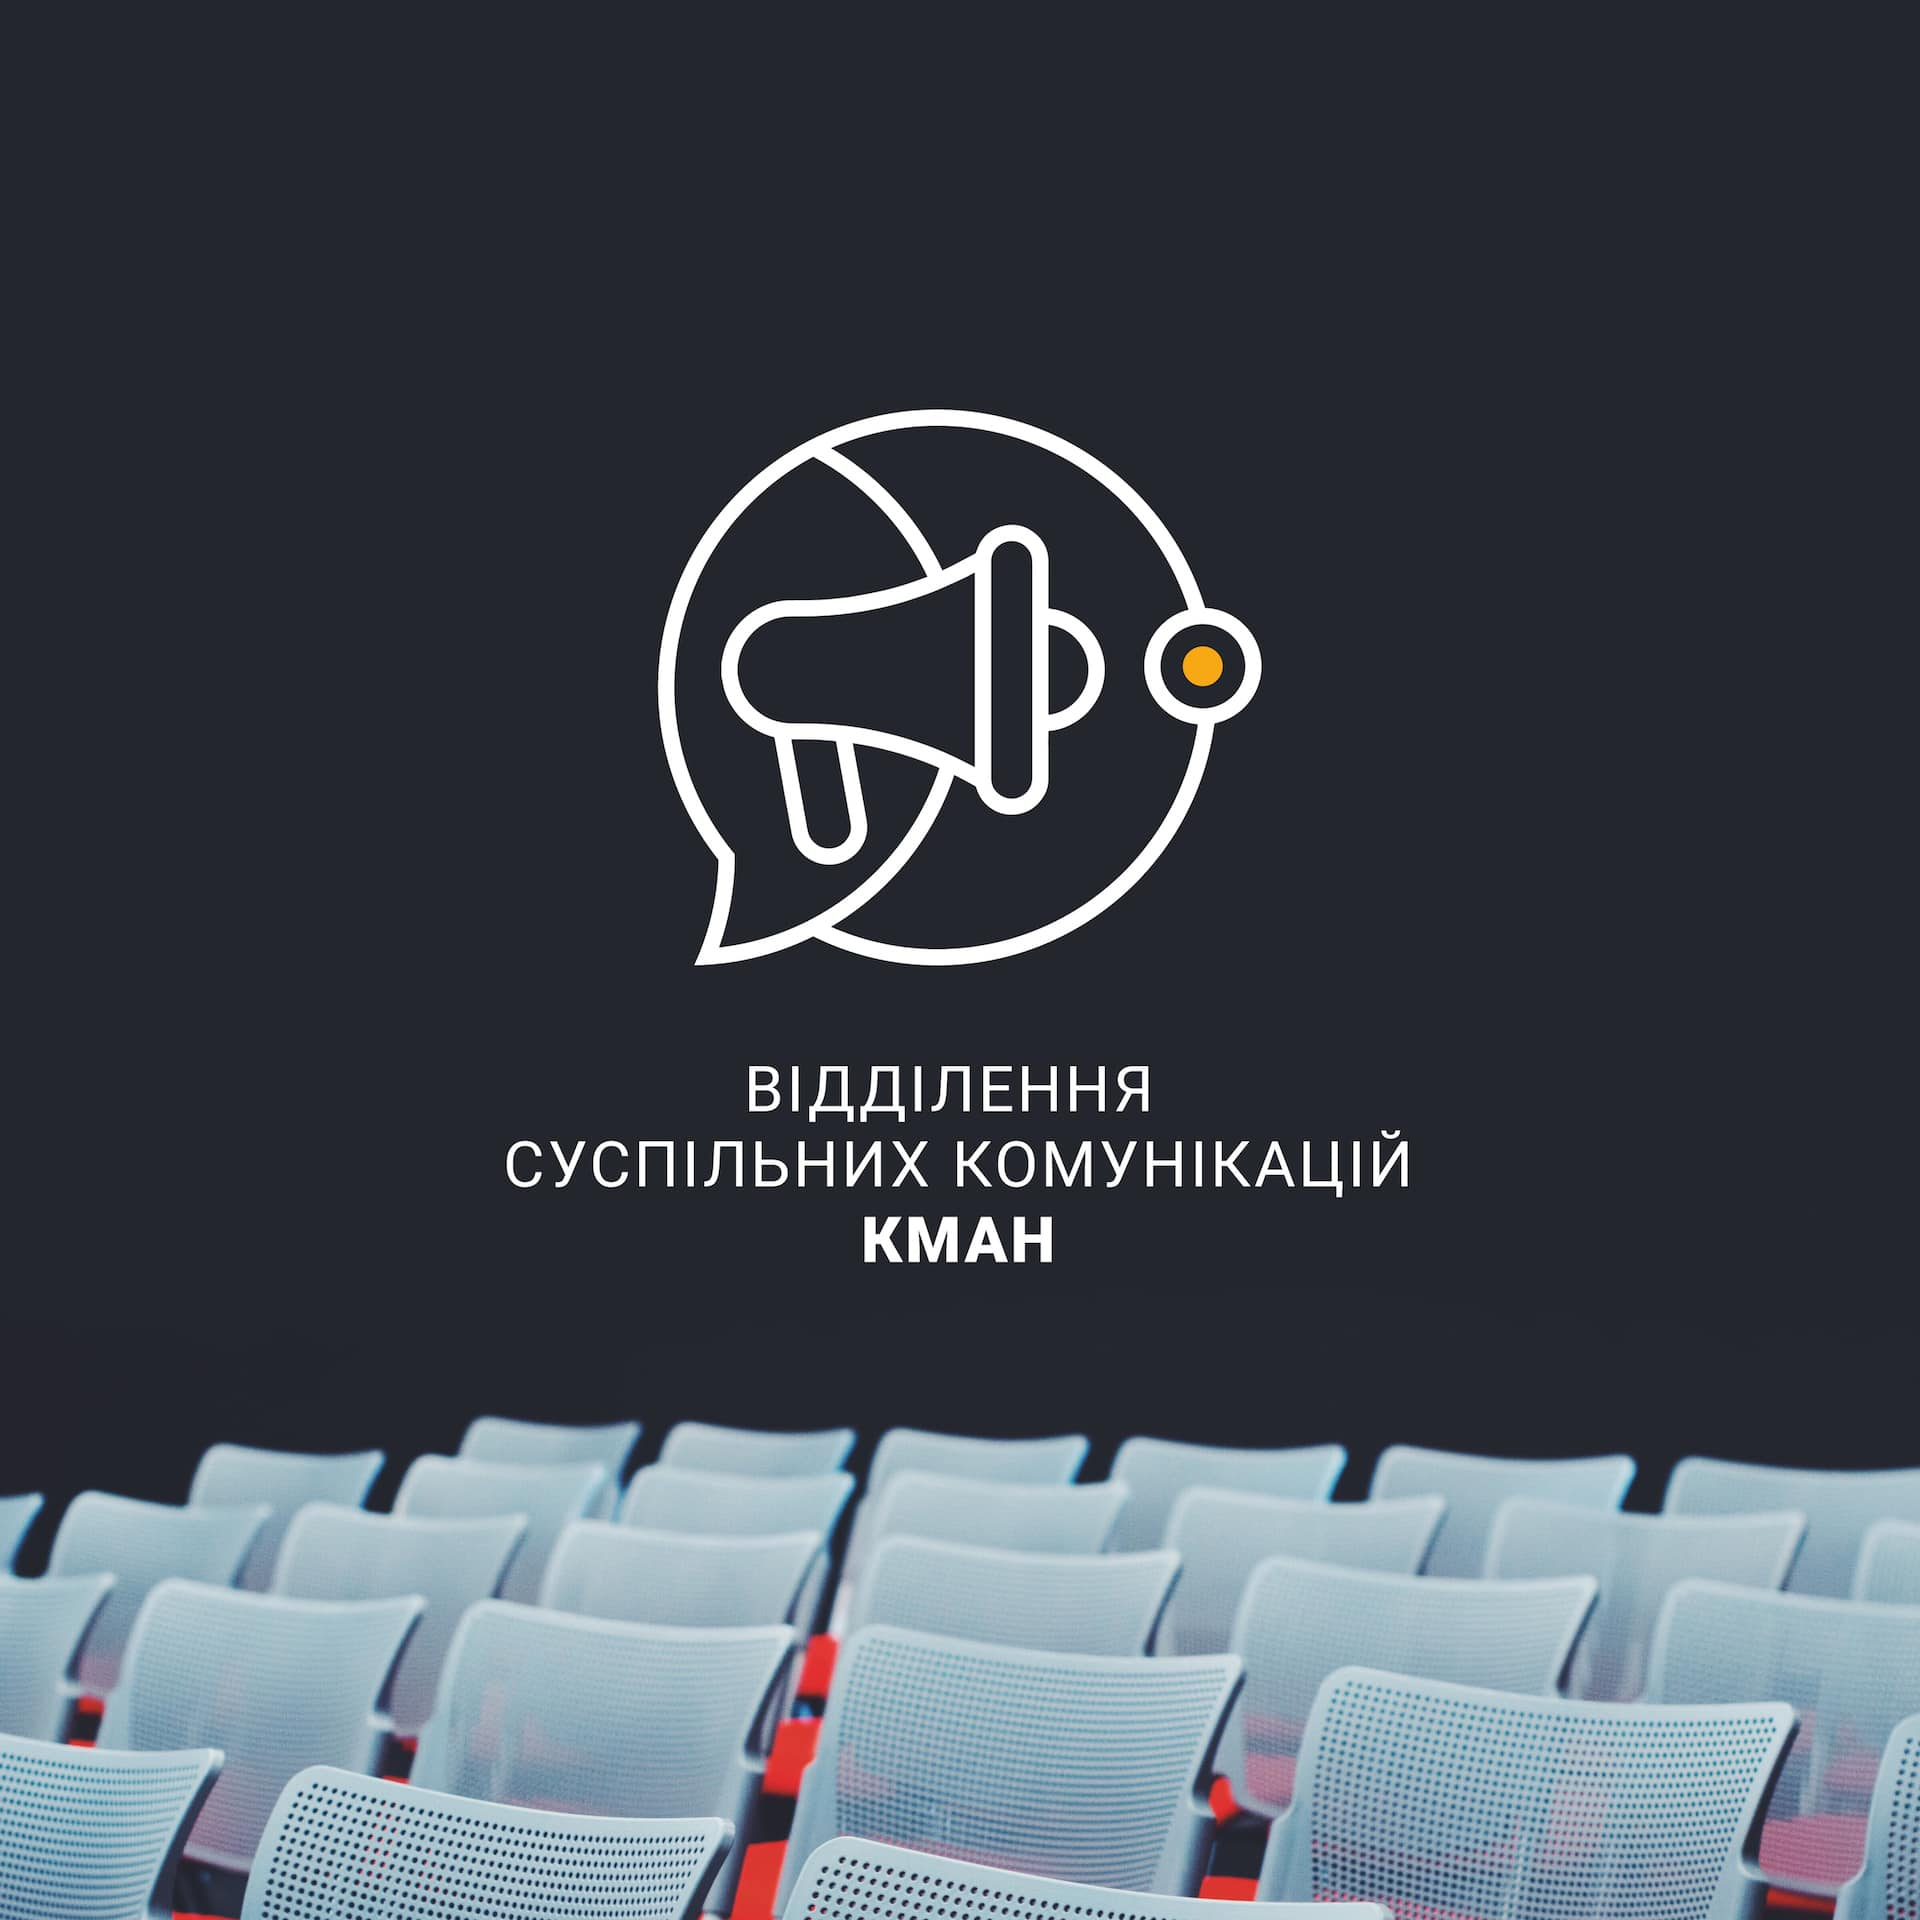 Logo development for the Kyiv Youth Academy of Sciences